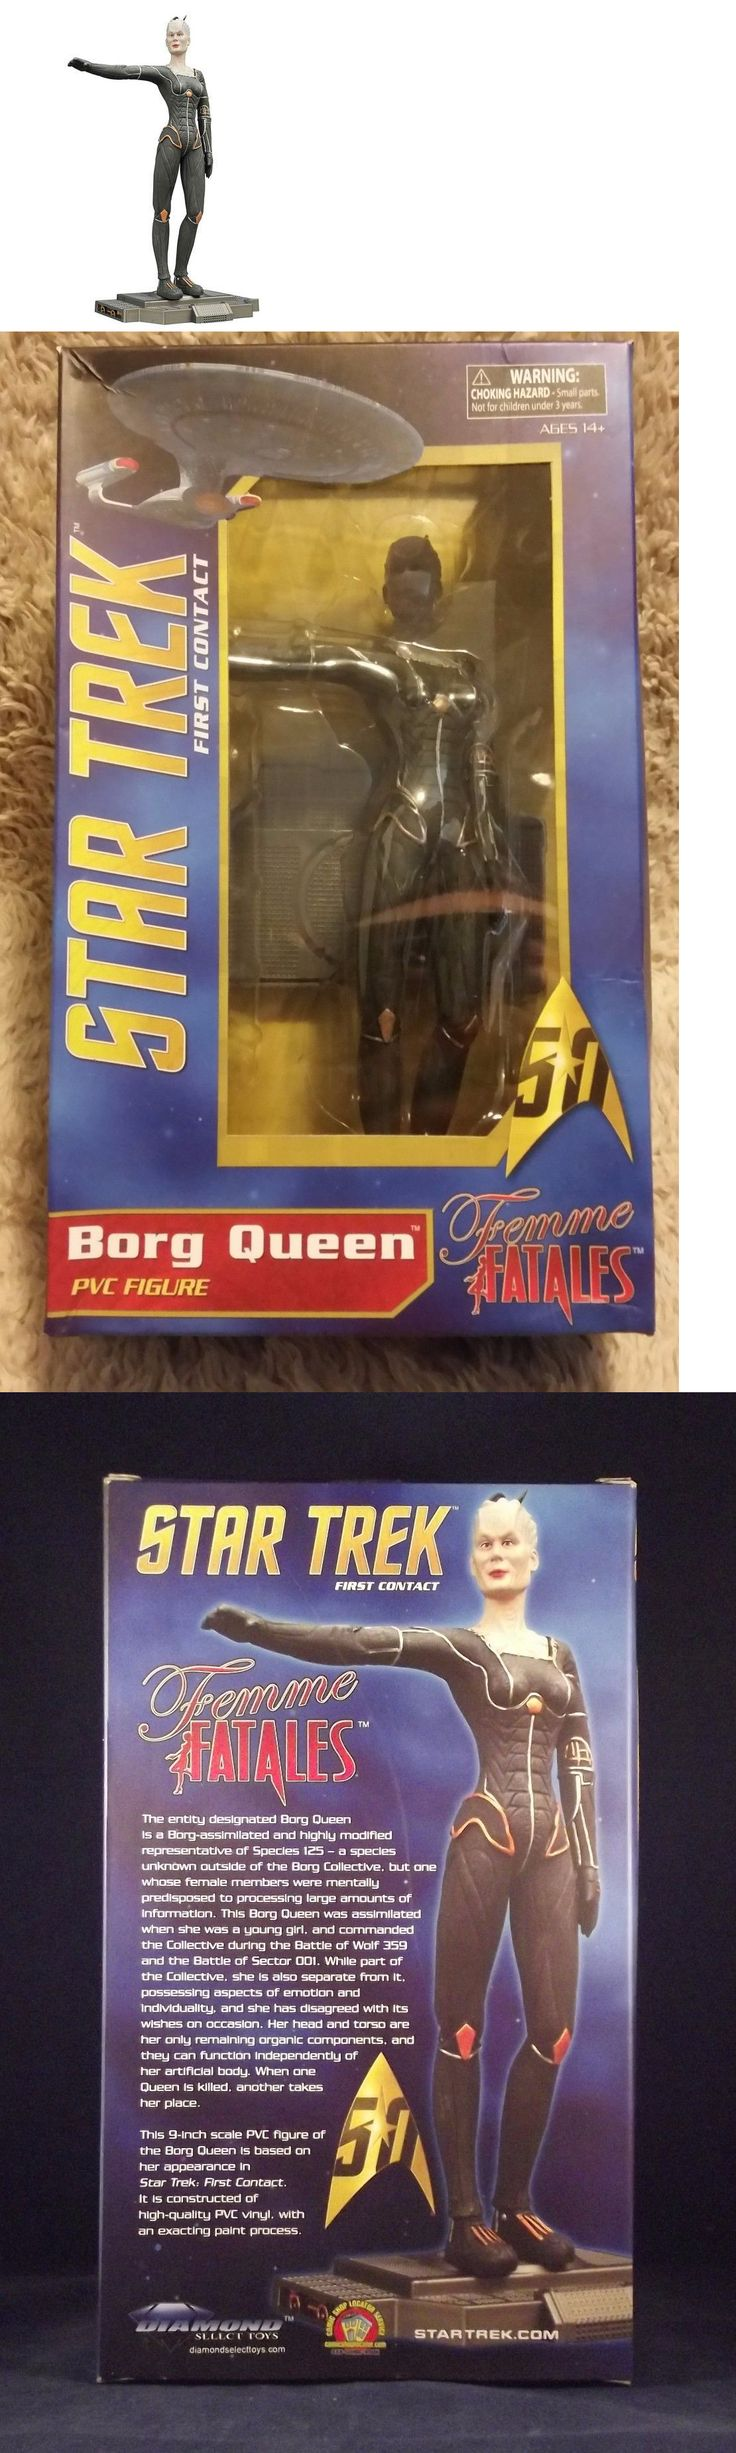 Fantasy 175693: Femme Fatales ~ Star Trek - Borg Queen ~ 9 Pvc Statue By Diamond Select Toys -> BUY IT NOW ONLY: $64.99 on eBay!